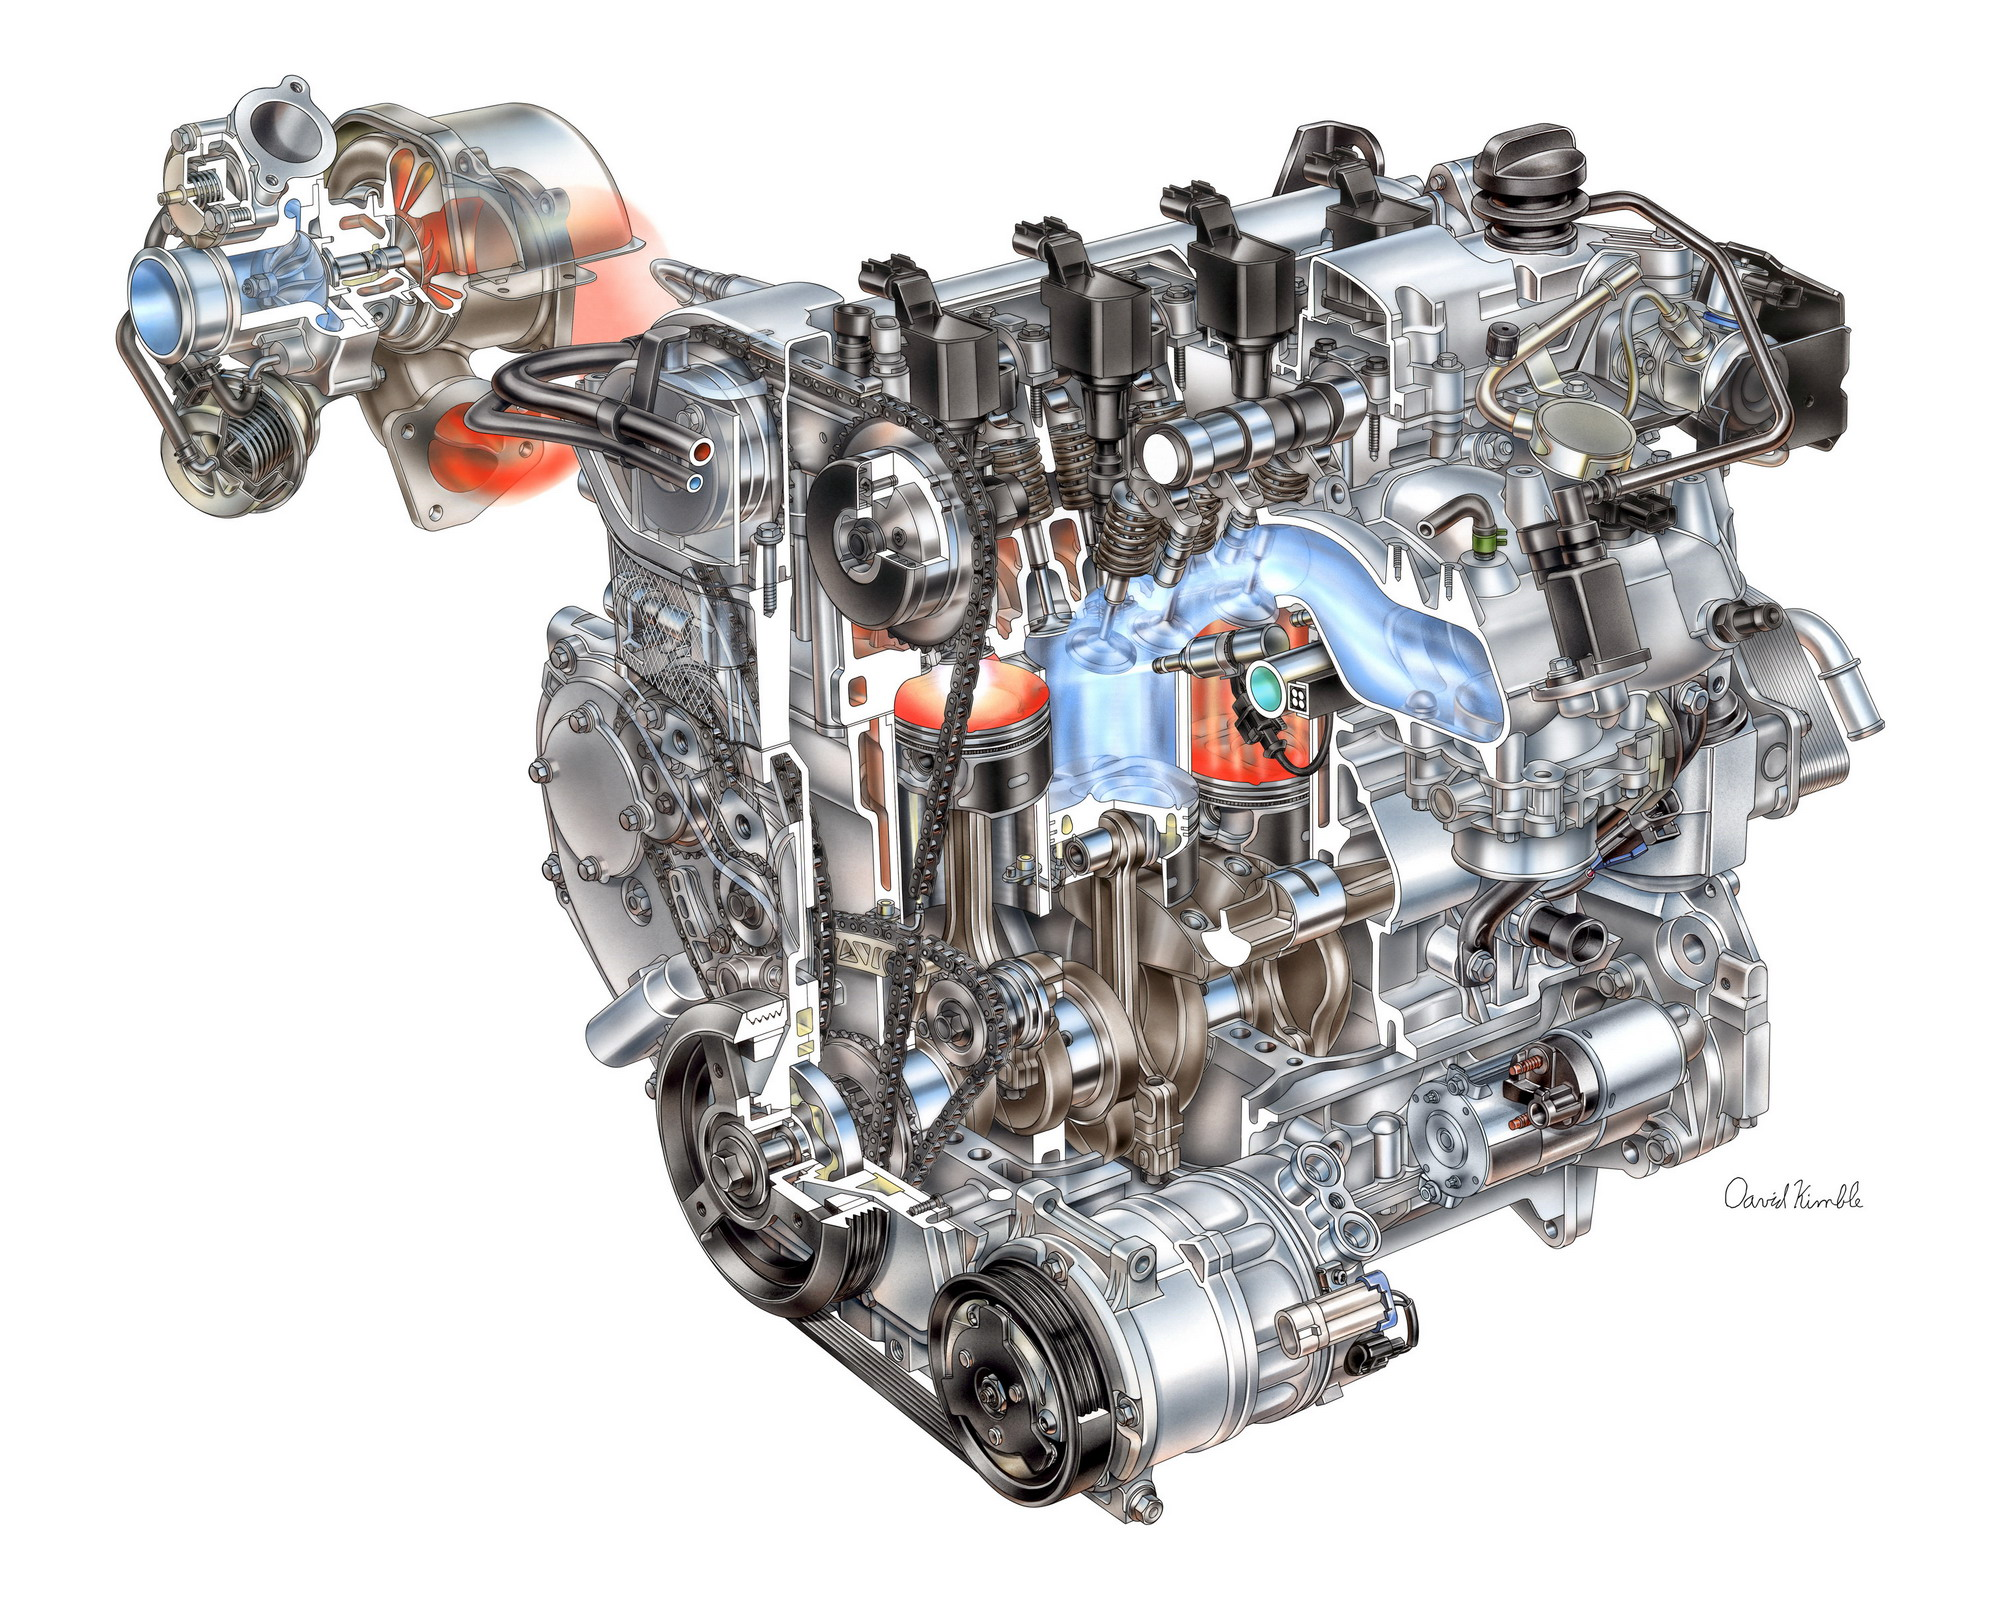 2012 Buick Regal Engine Diagram Enthusiast Wiring Diagrams U2022 Rh Rasalibre Co 2014 Volvo S70